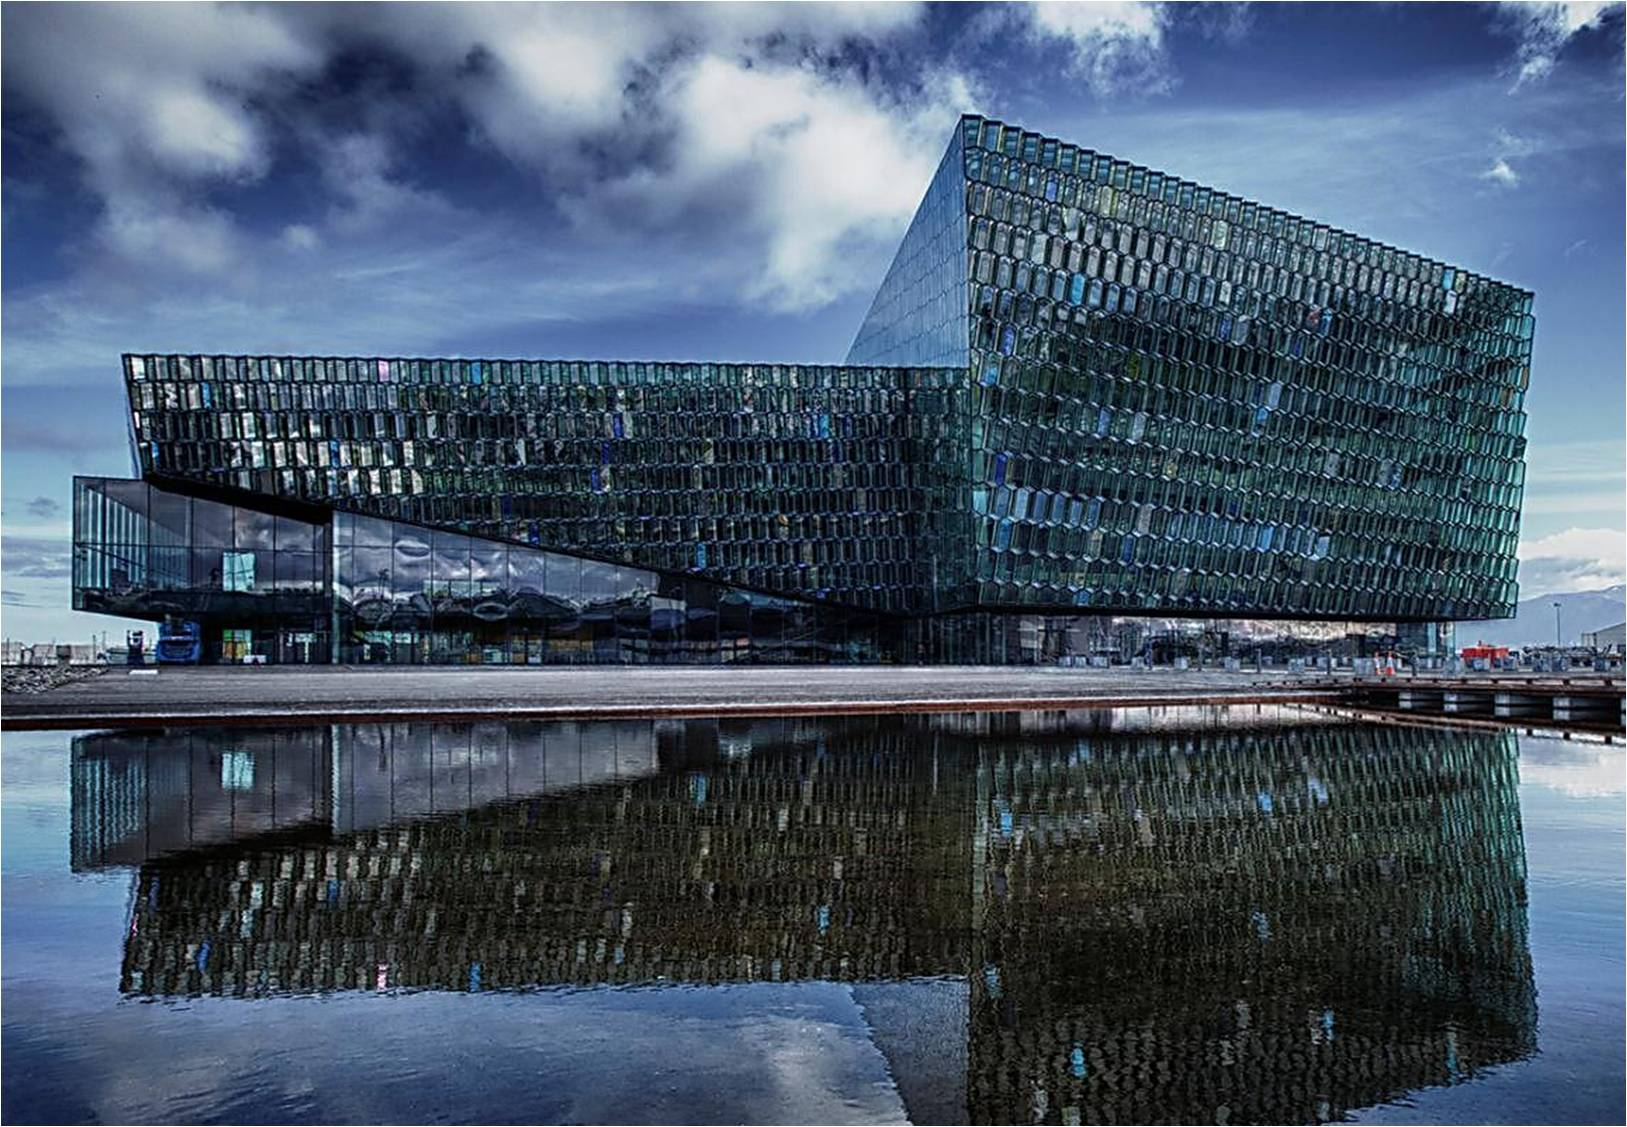 Reducing Carbon >> Harpa conference center and concert hall | First Class - Your DMC in Iceland